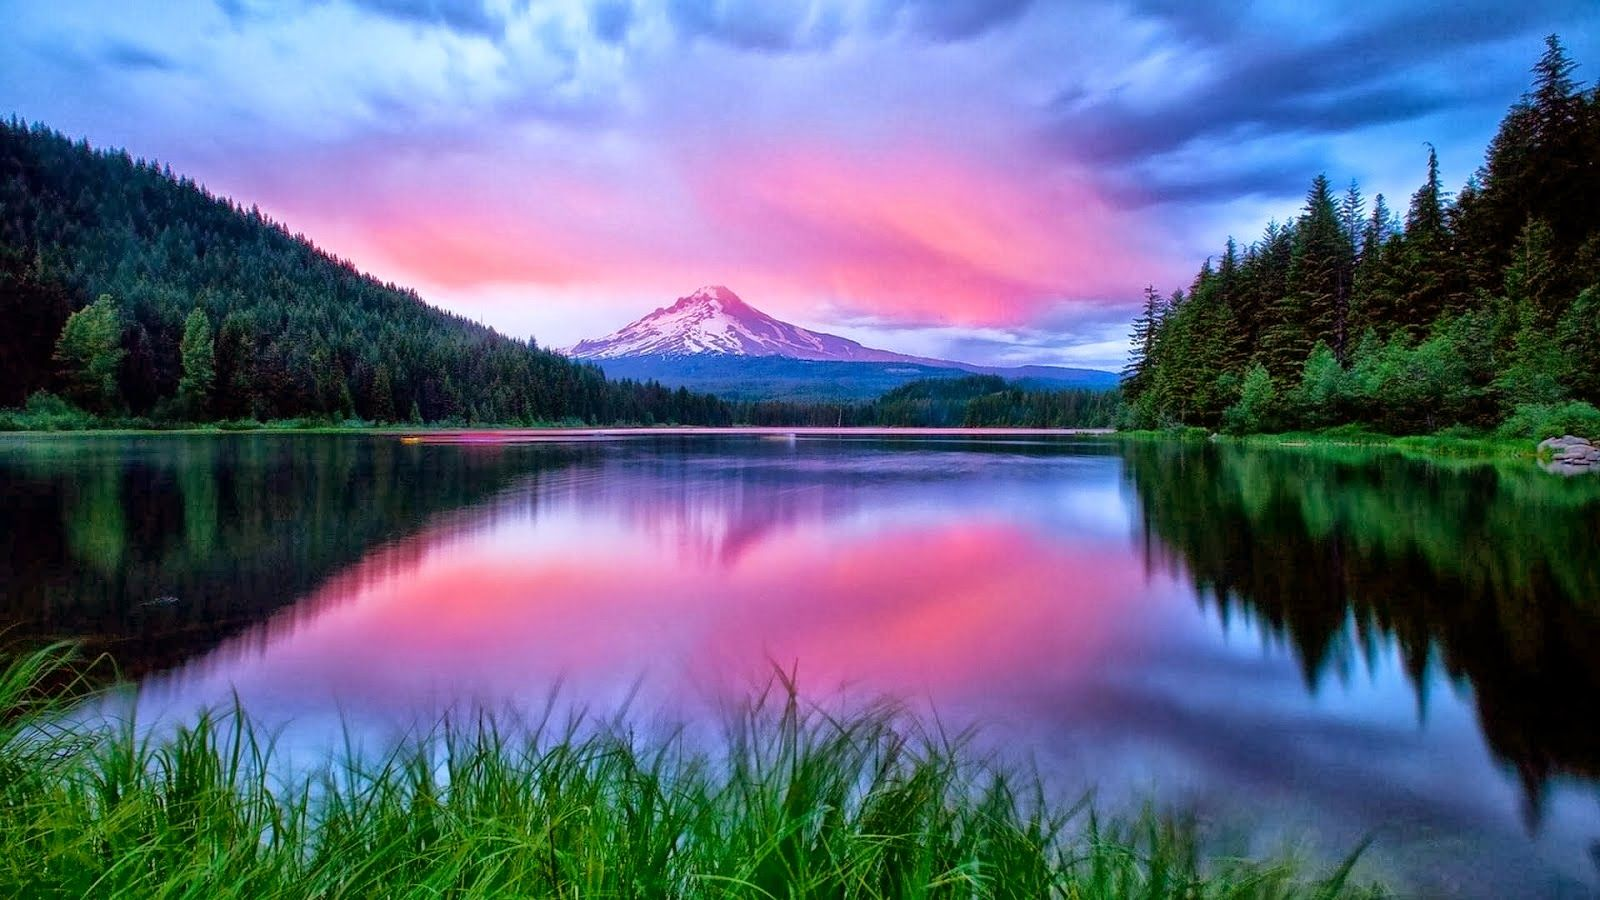 Hd Wallpapers Of Nature Beautiful Nature Wallpaper Cool Pictures Of Nature Nature Wallpaper